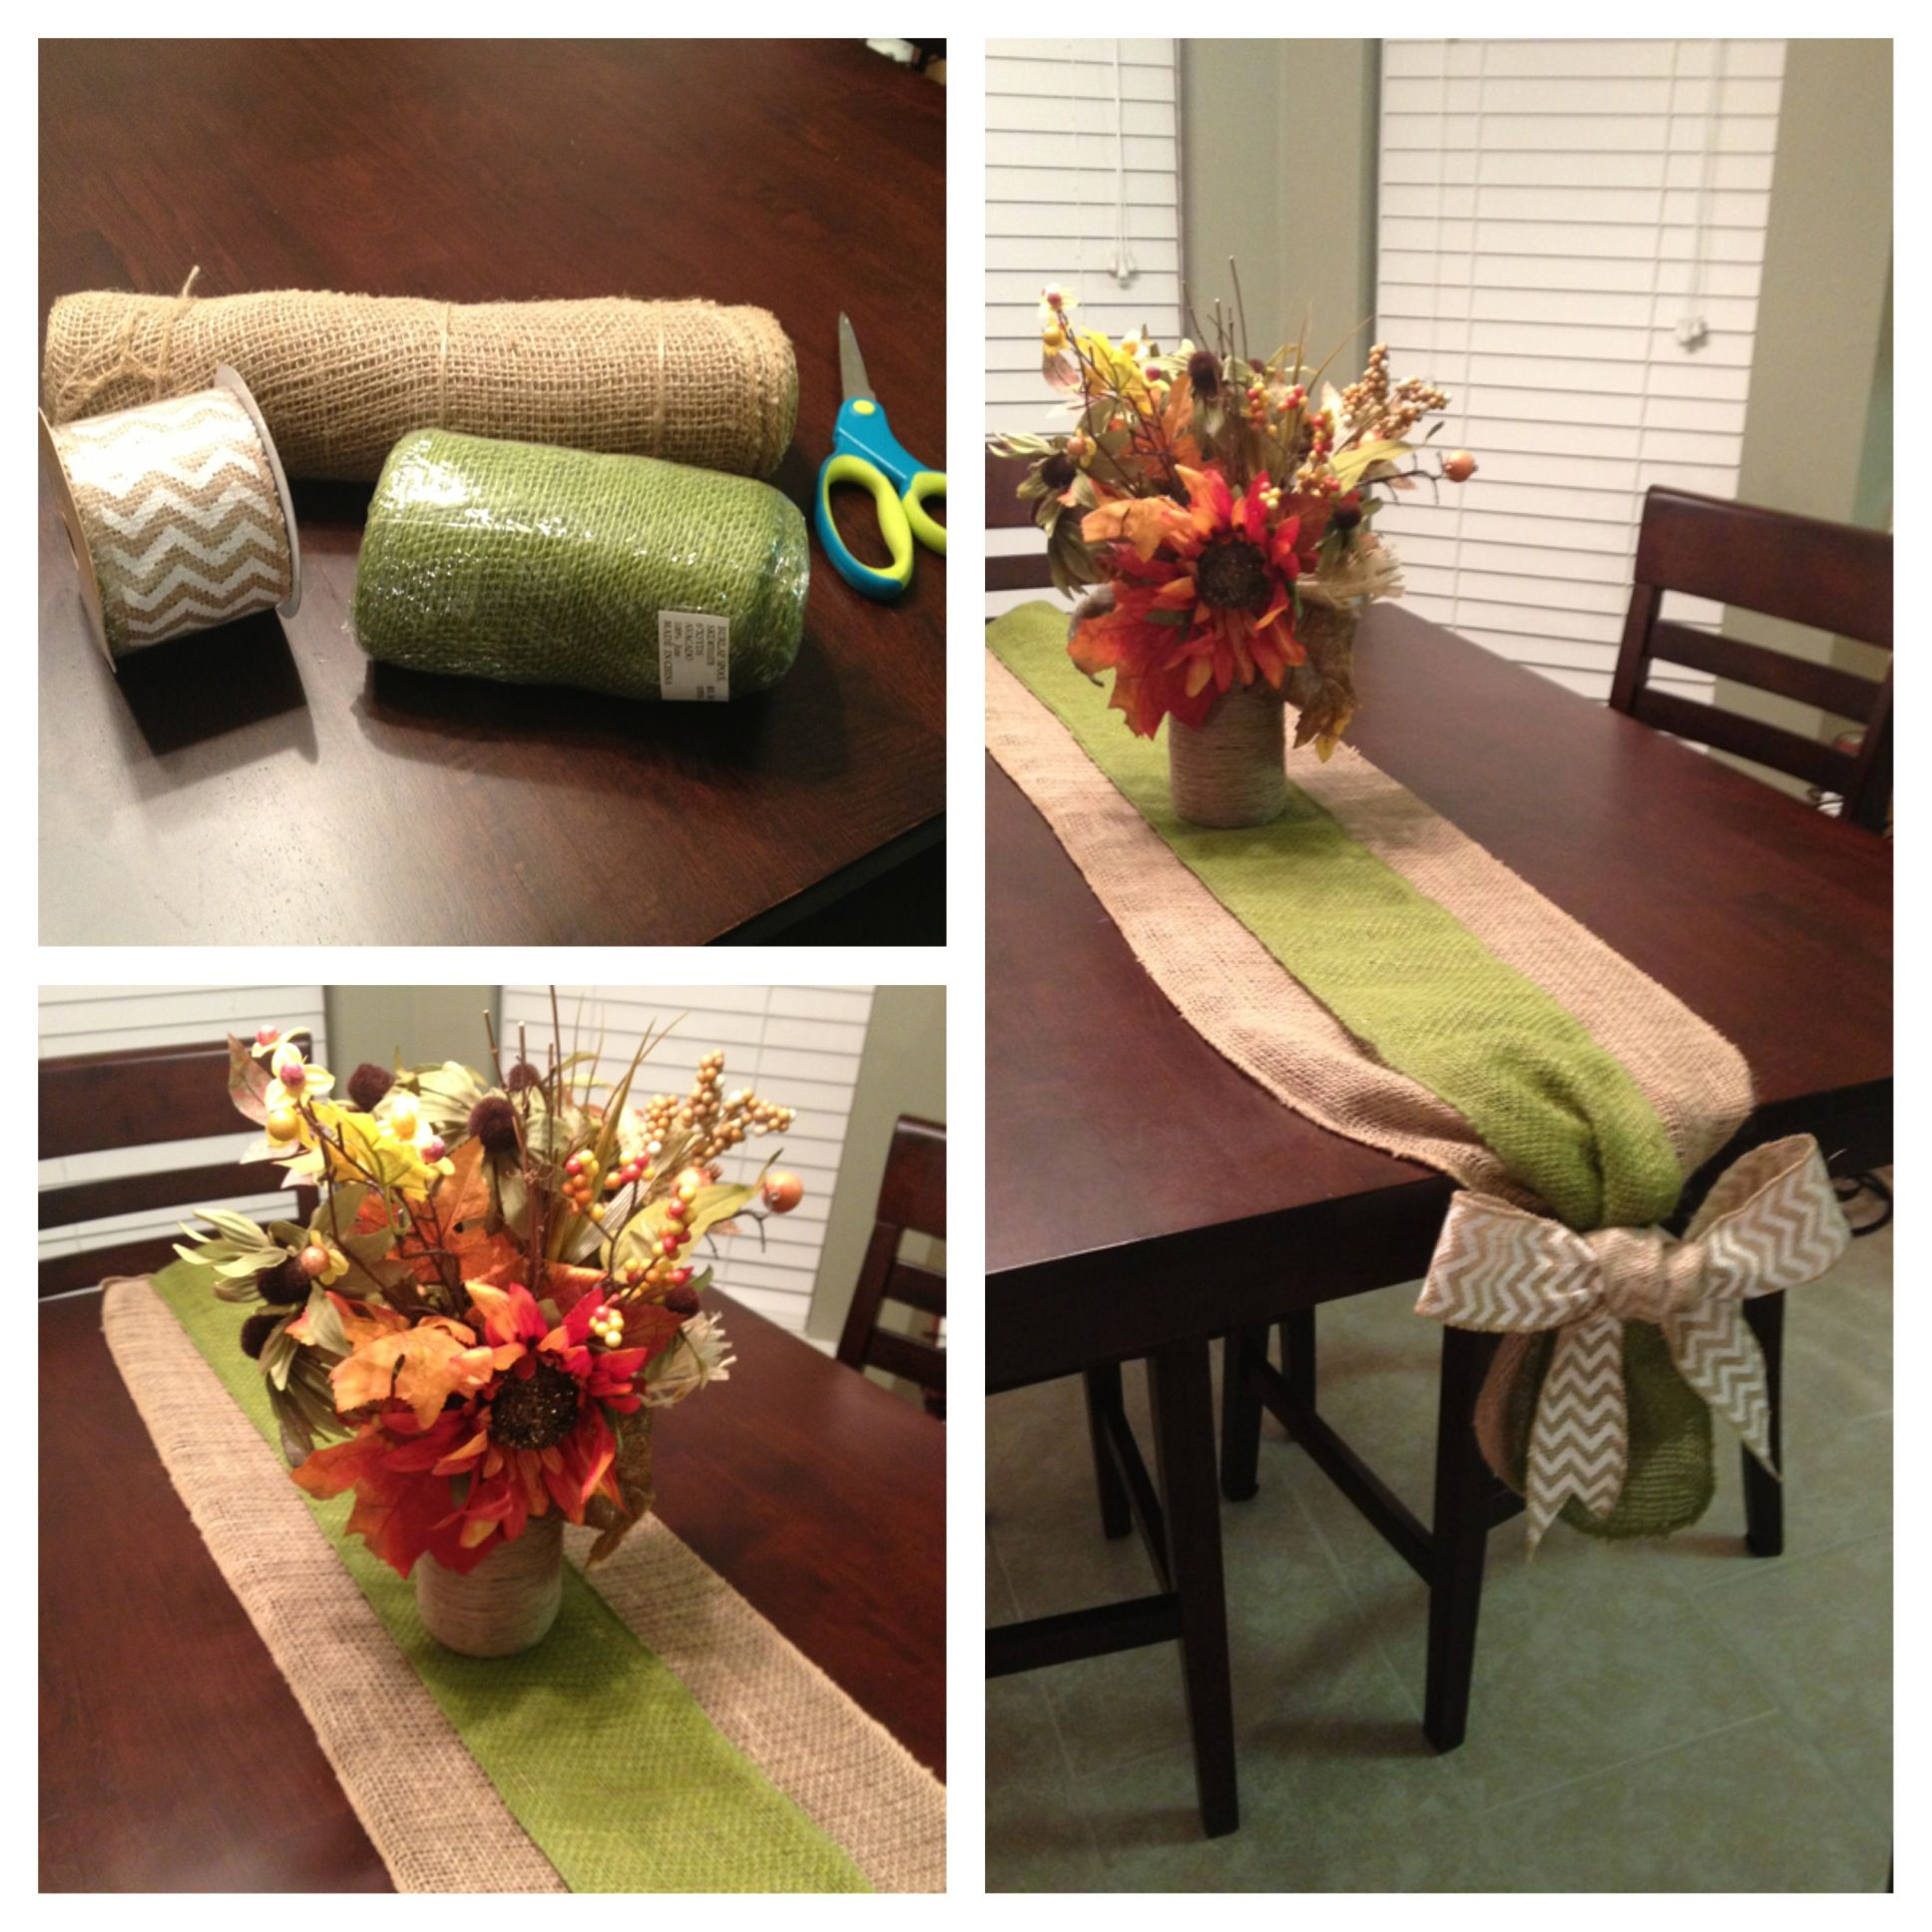 DIY Burlap Table Runner With Diff Centerpiece For Christmas